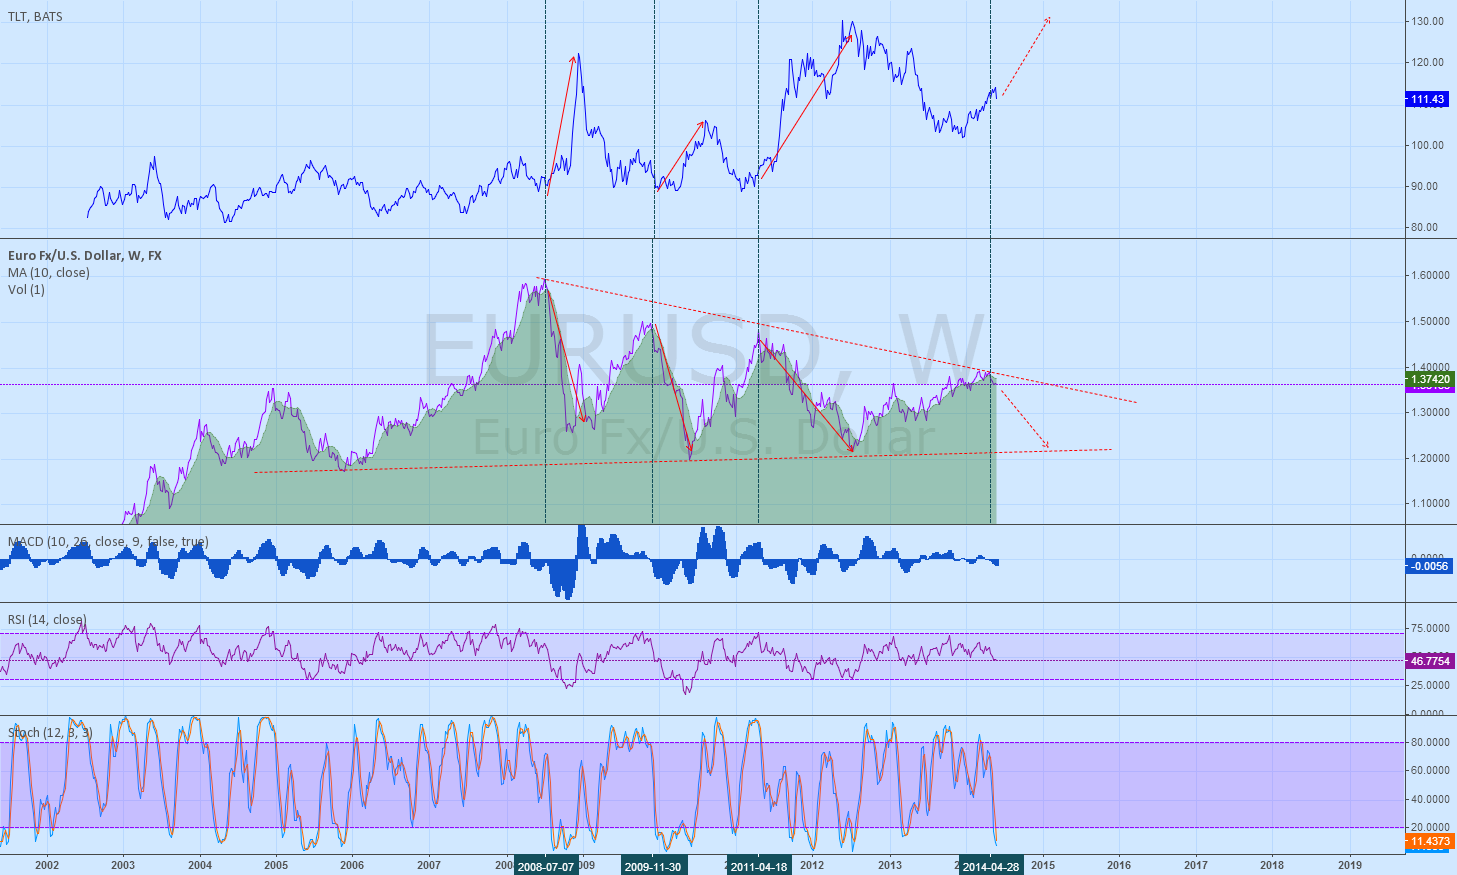 Lower EURUSD seems to favor TLT